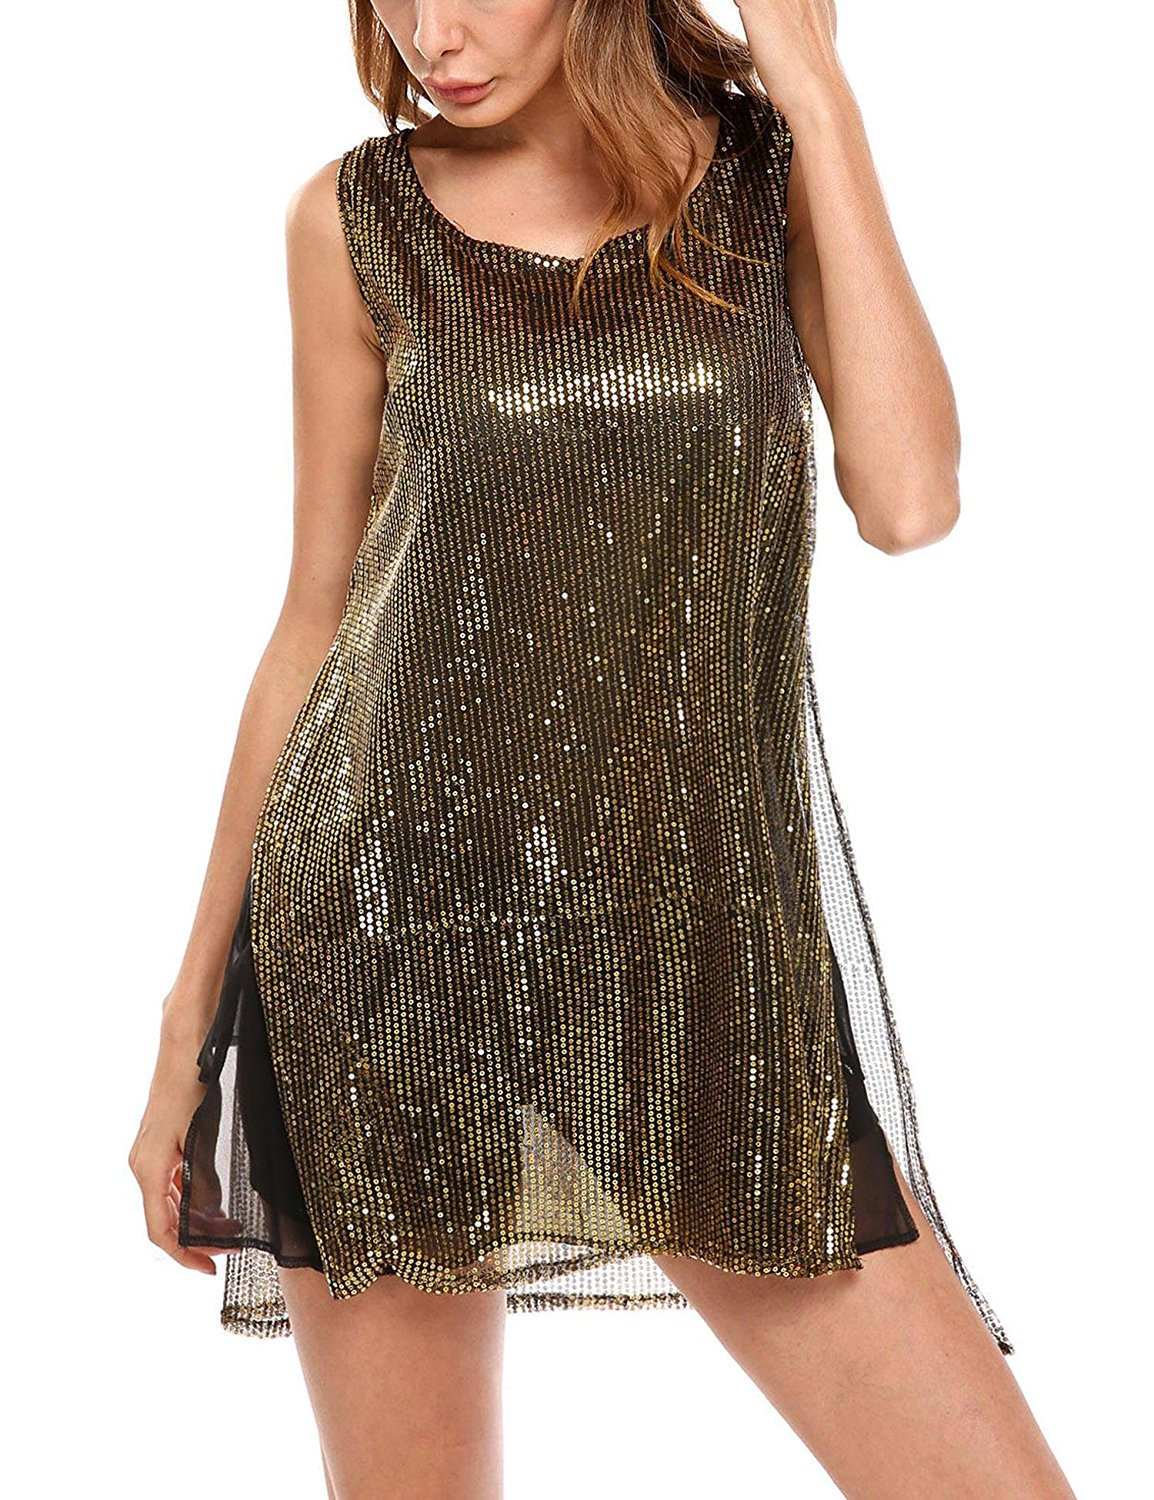 8f9ef956 Get Quotations · ELESOL Womens Sleeveless Sparkly Sequin Tunic Tops Sexy  Glitter Party Mini Dress